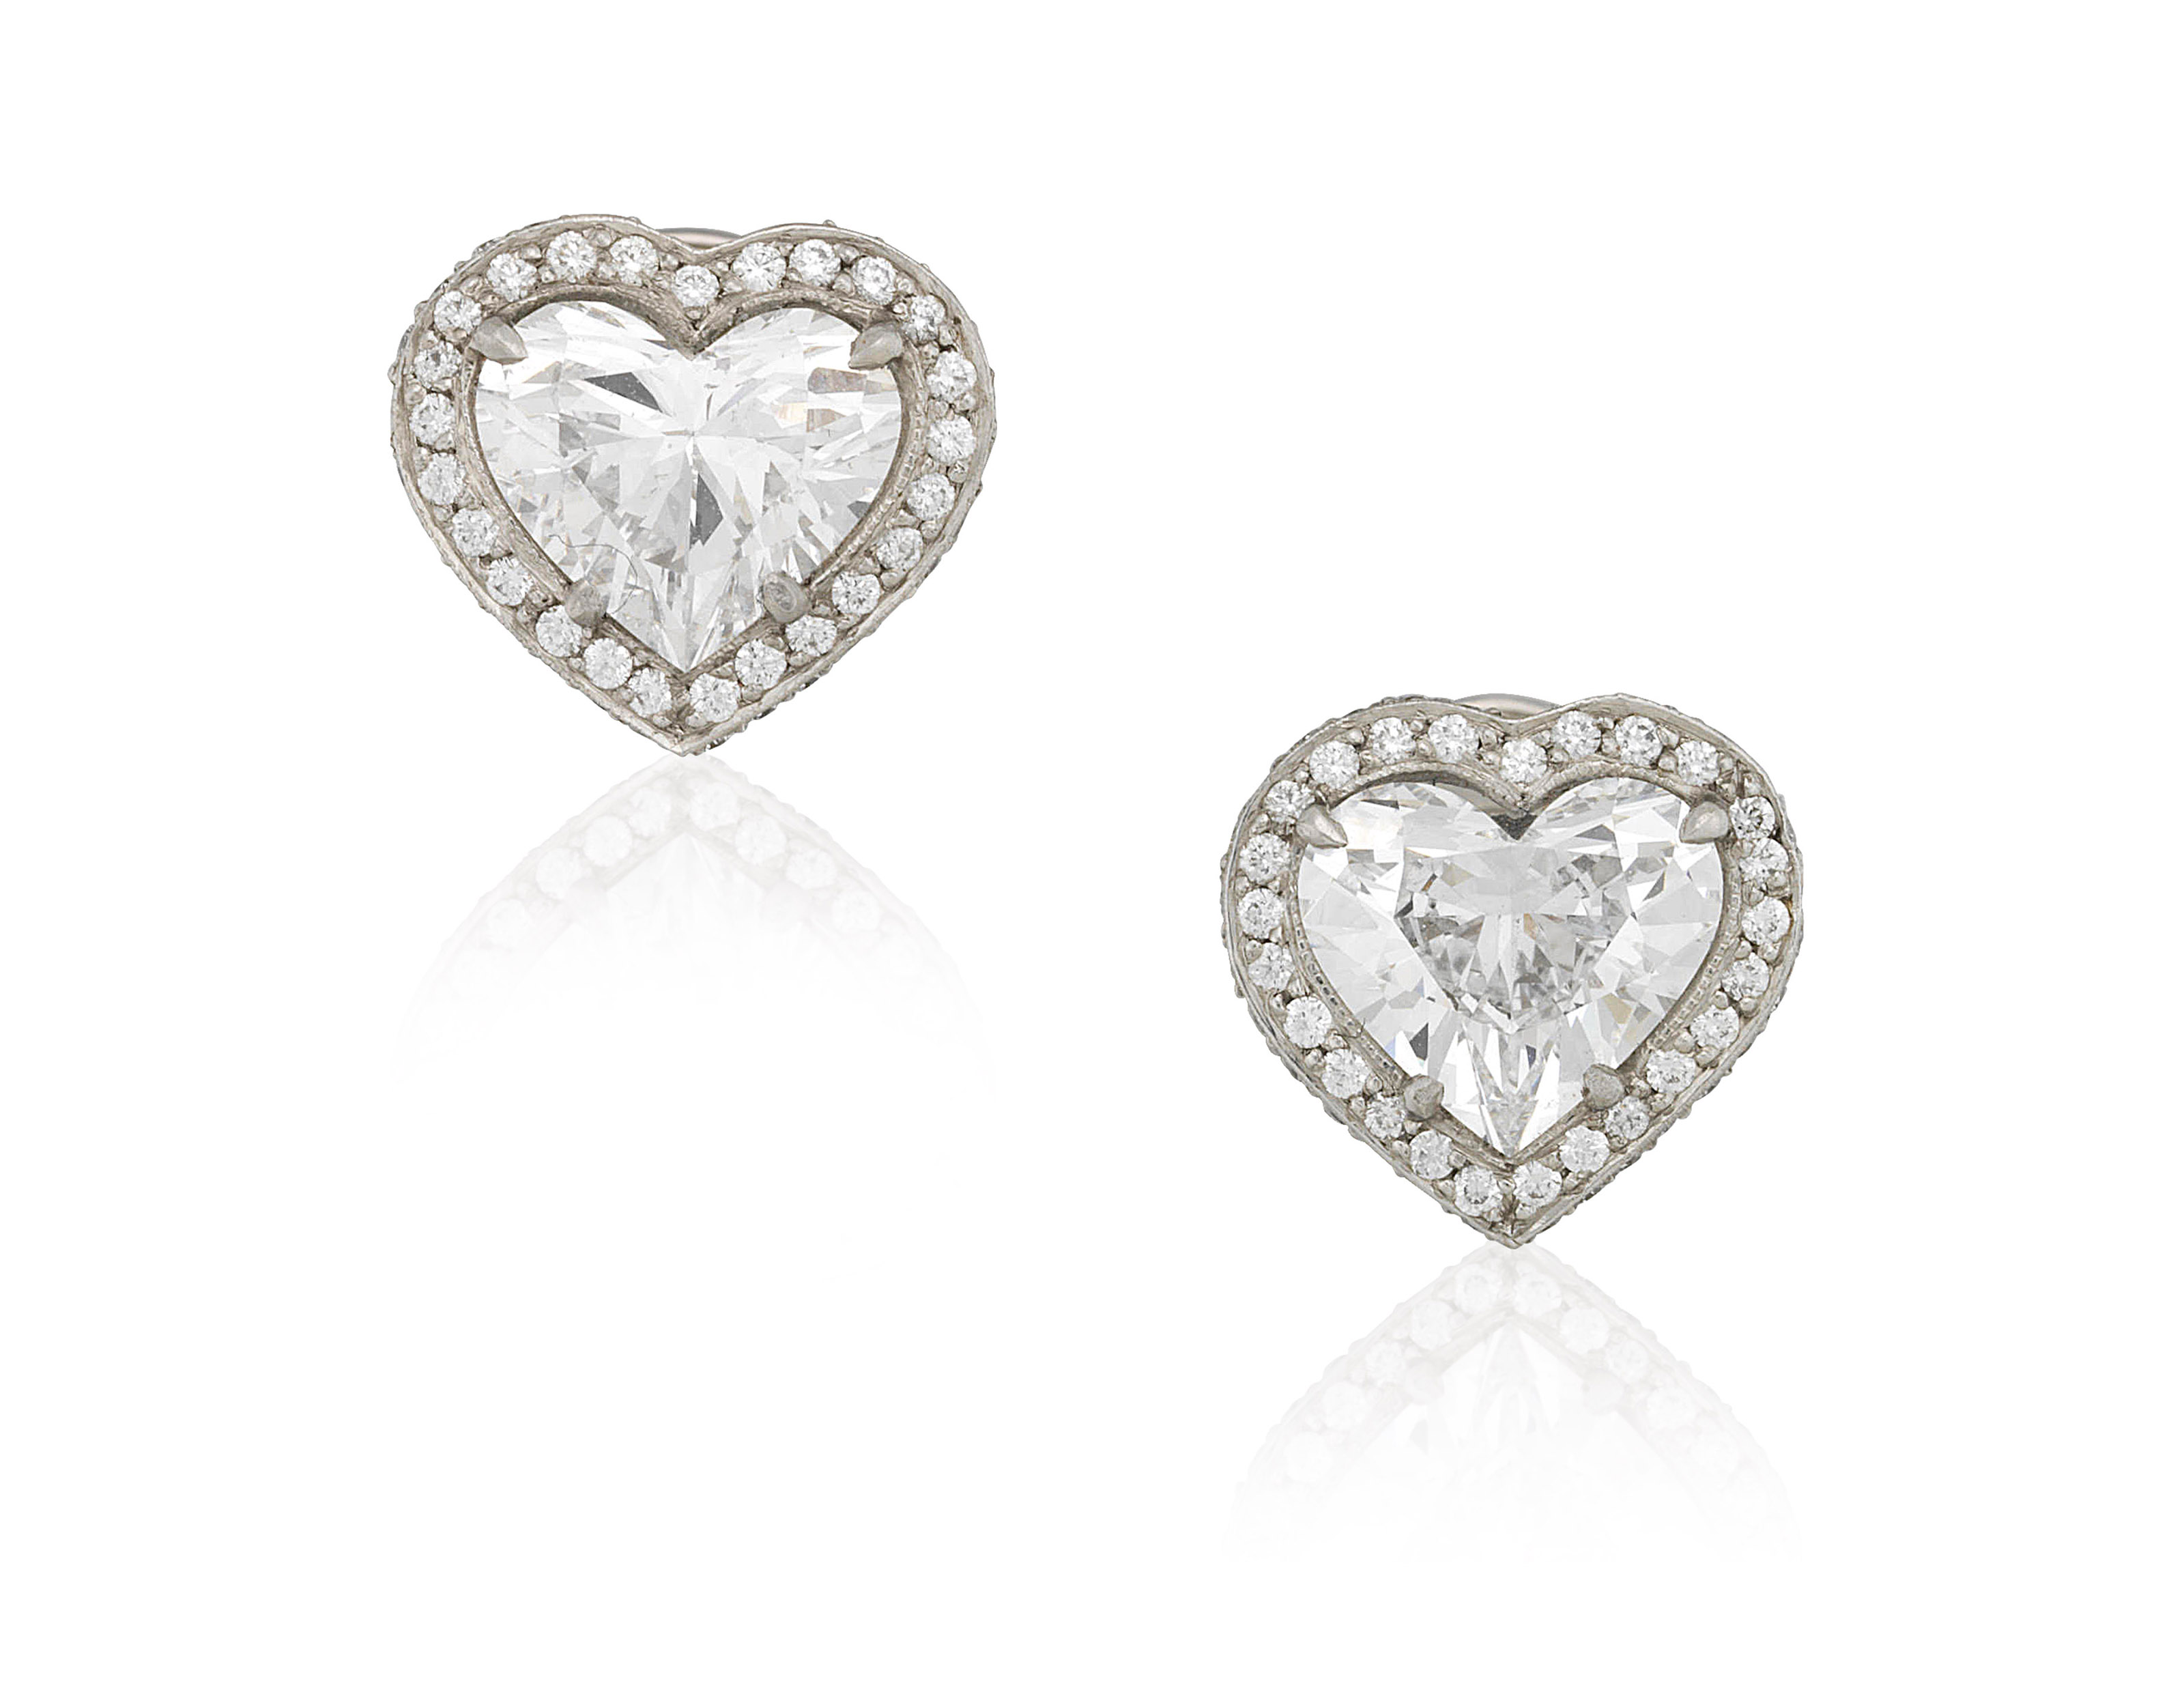 sylvie main yg diamond product yellow shaped heart earrings jewelry gold